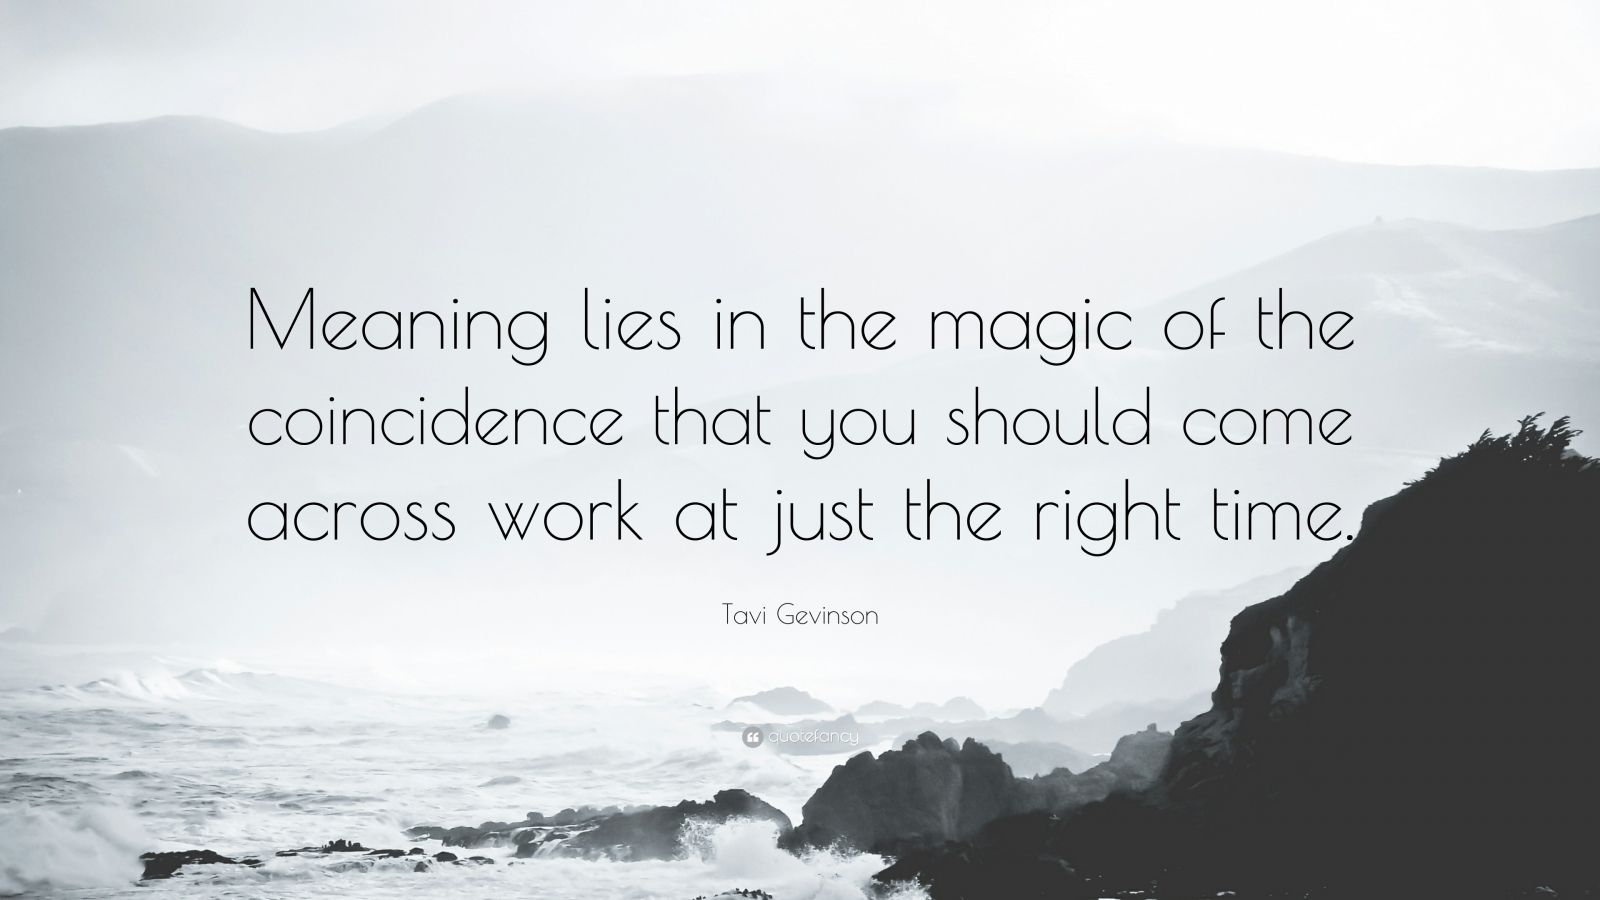 """Tavi Gevinson Quote: """"Meaning lies in the magic of the coincidence that you should come across work at just the right time."""""""